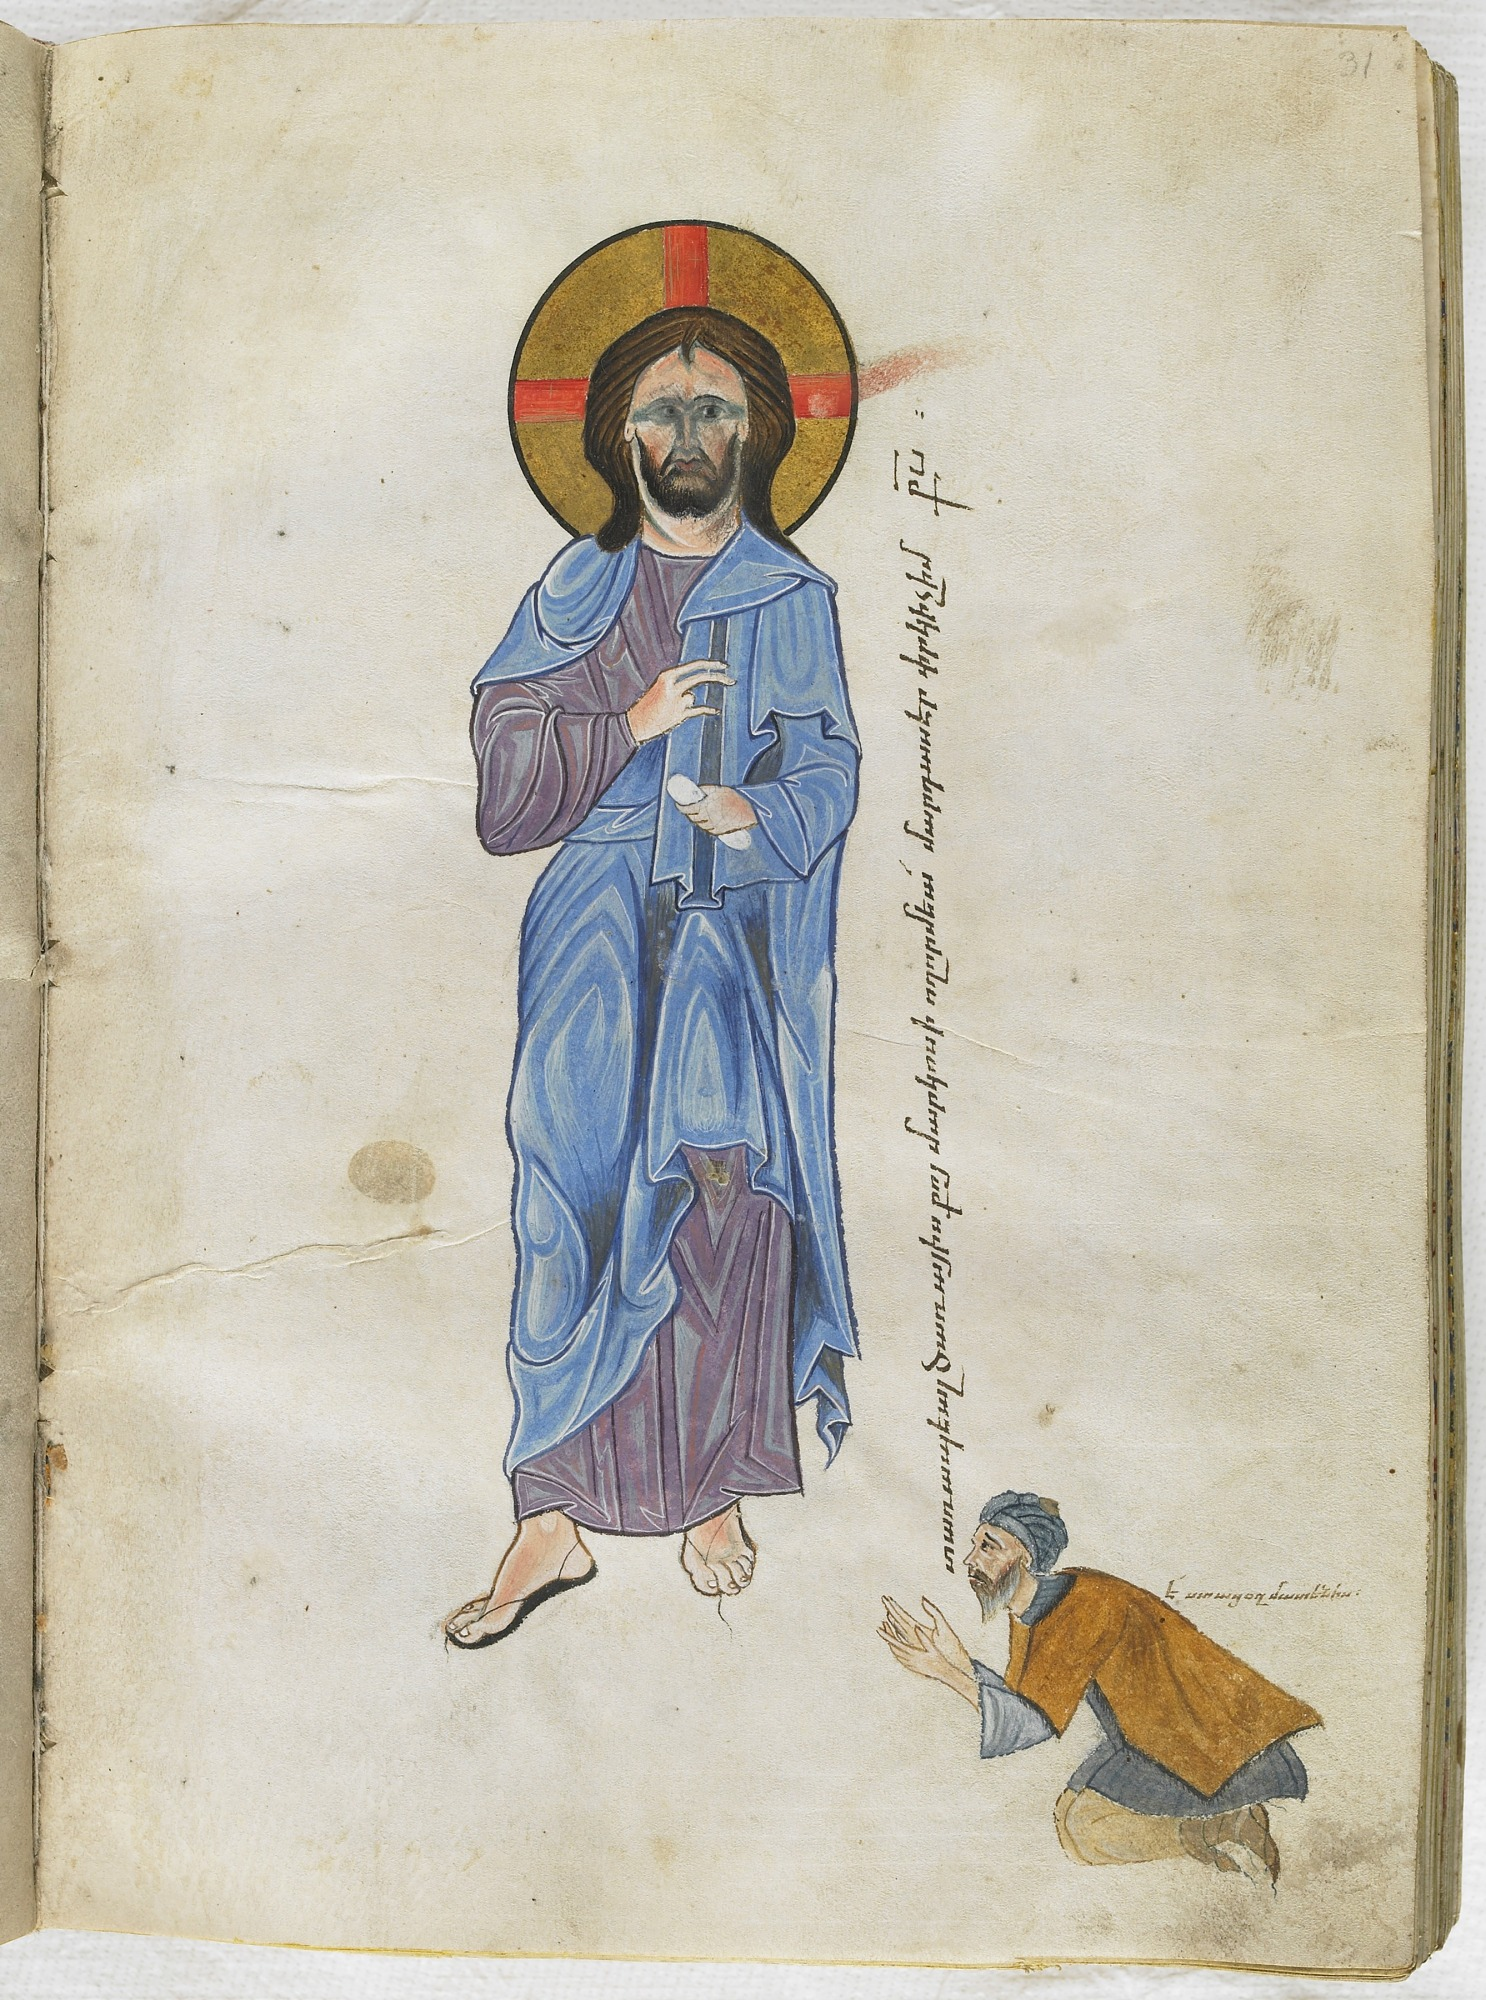 folio 31: The Gospel according to the Four Evangelists